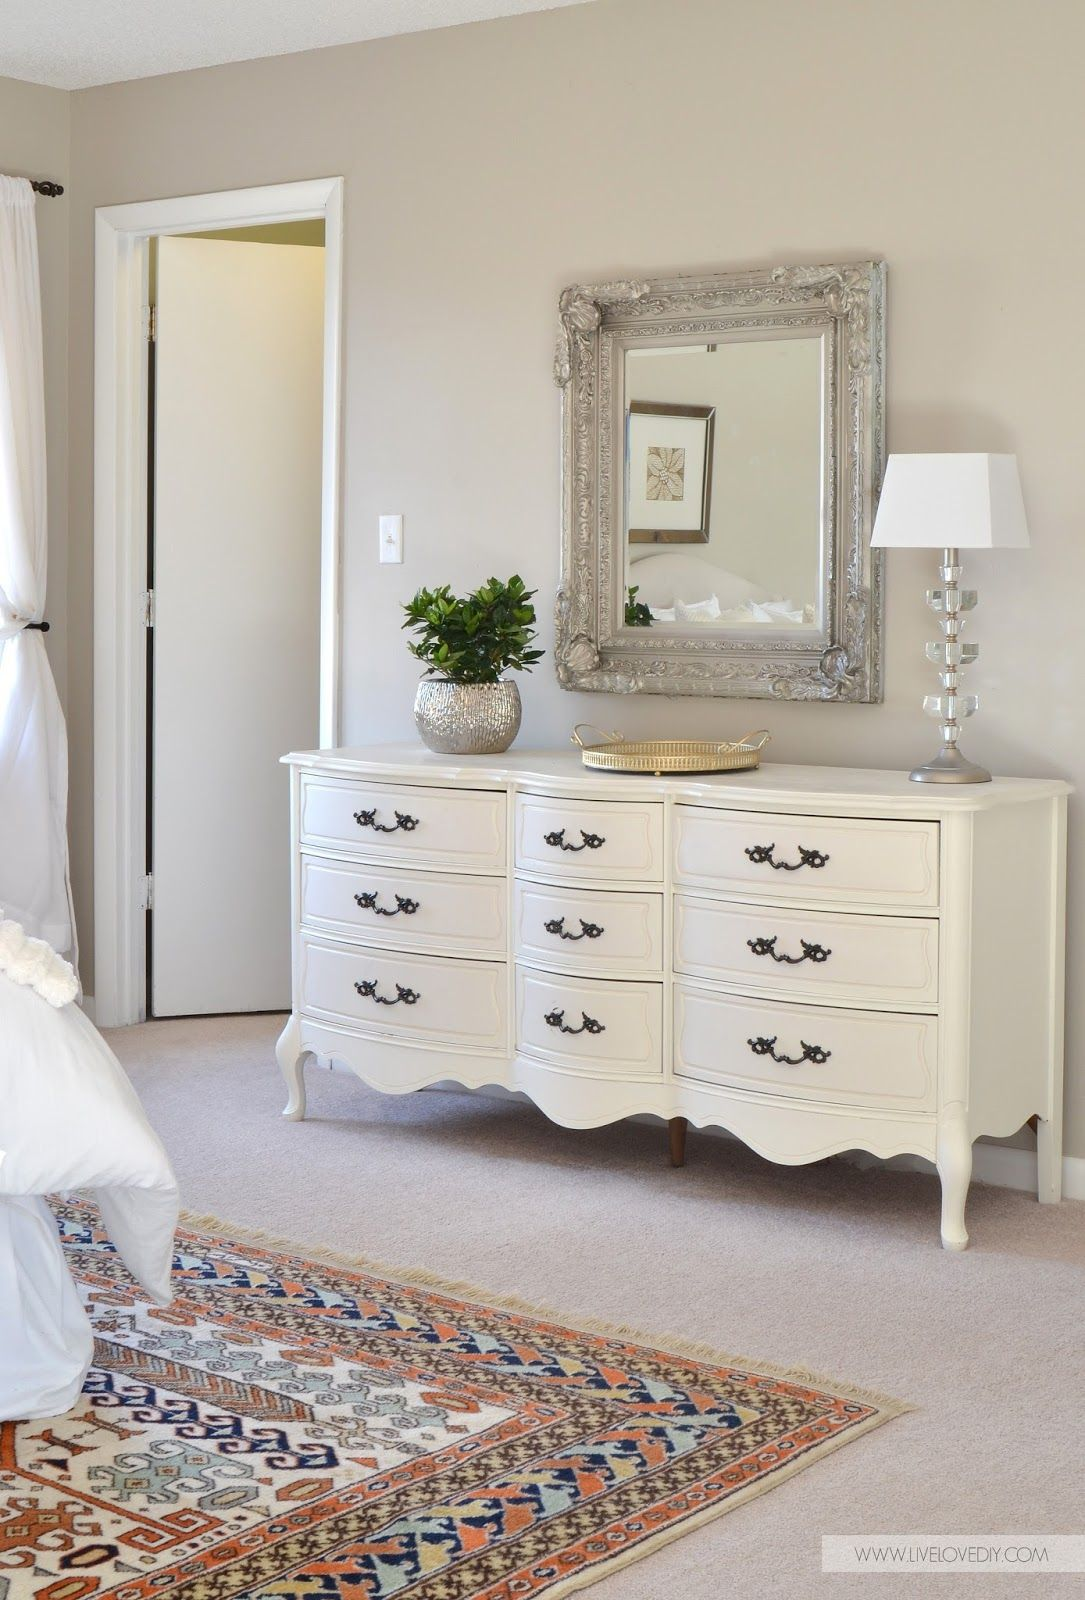 12 Simple Ways to Update Your Master Bedroom | DIY decorating ...